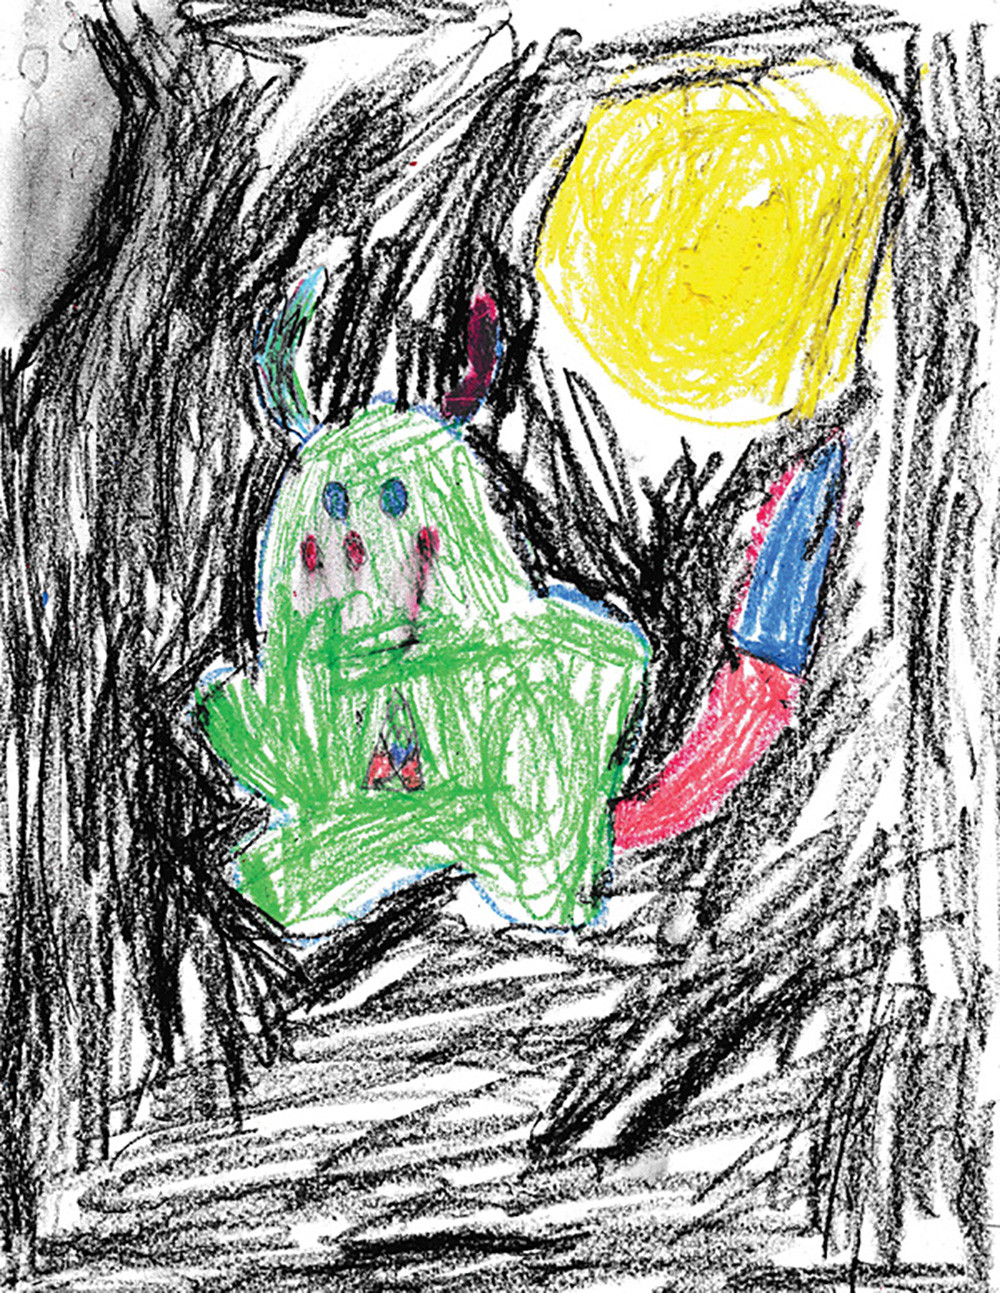 Reagan's original monster drawing